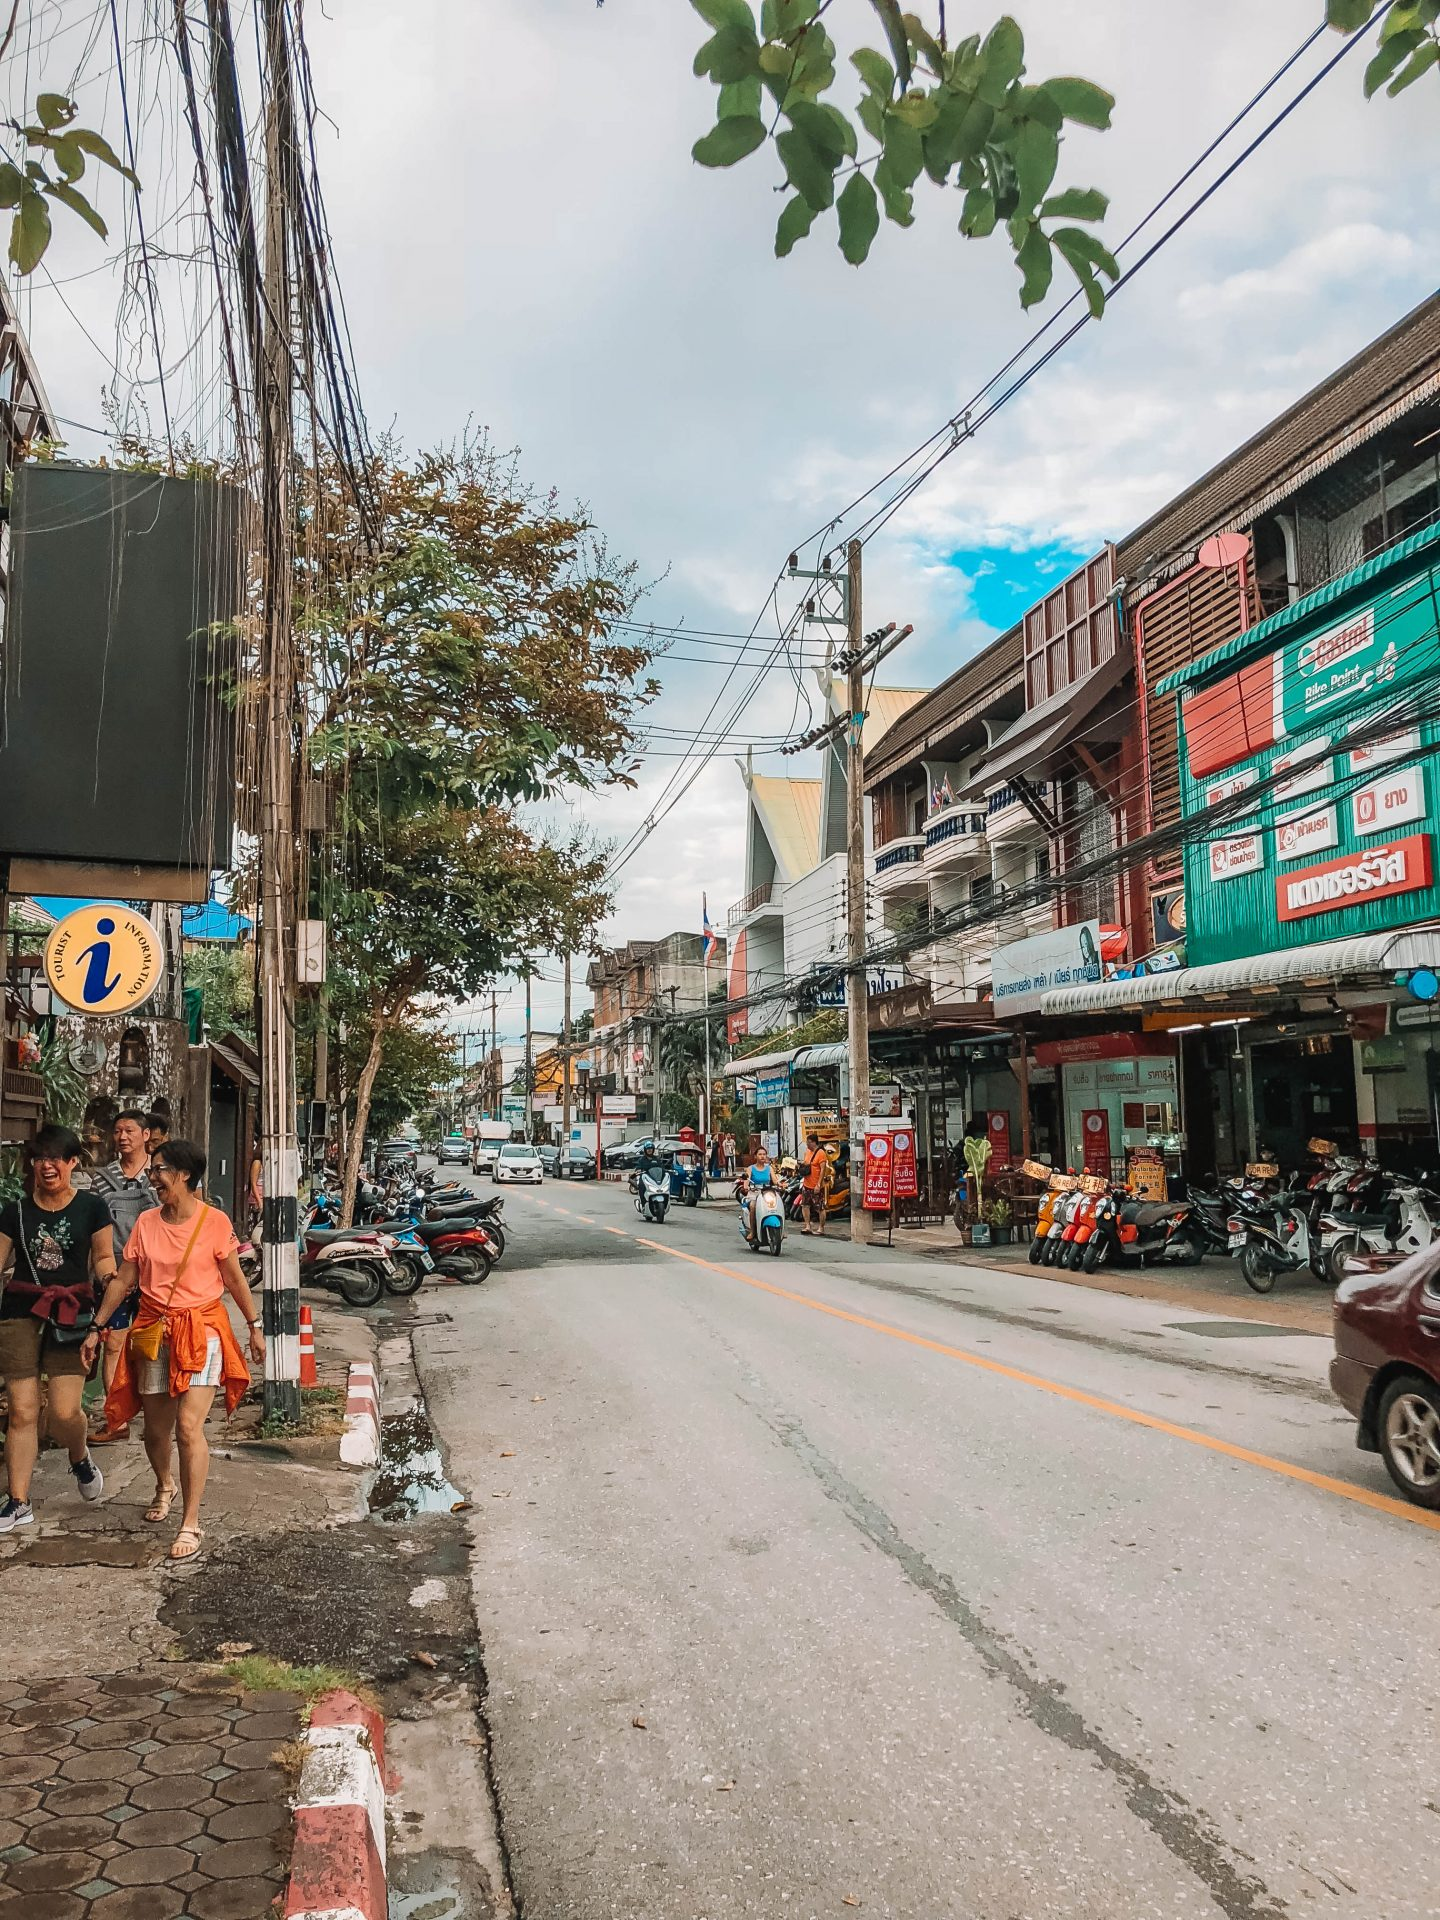 Visiter Chiang Mai - Blondie Baby blog mode et voyages